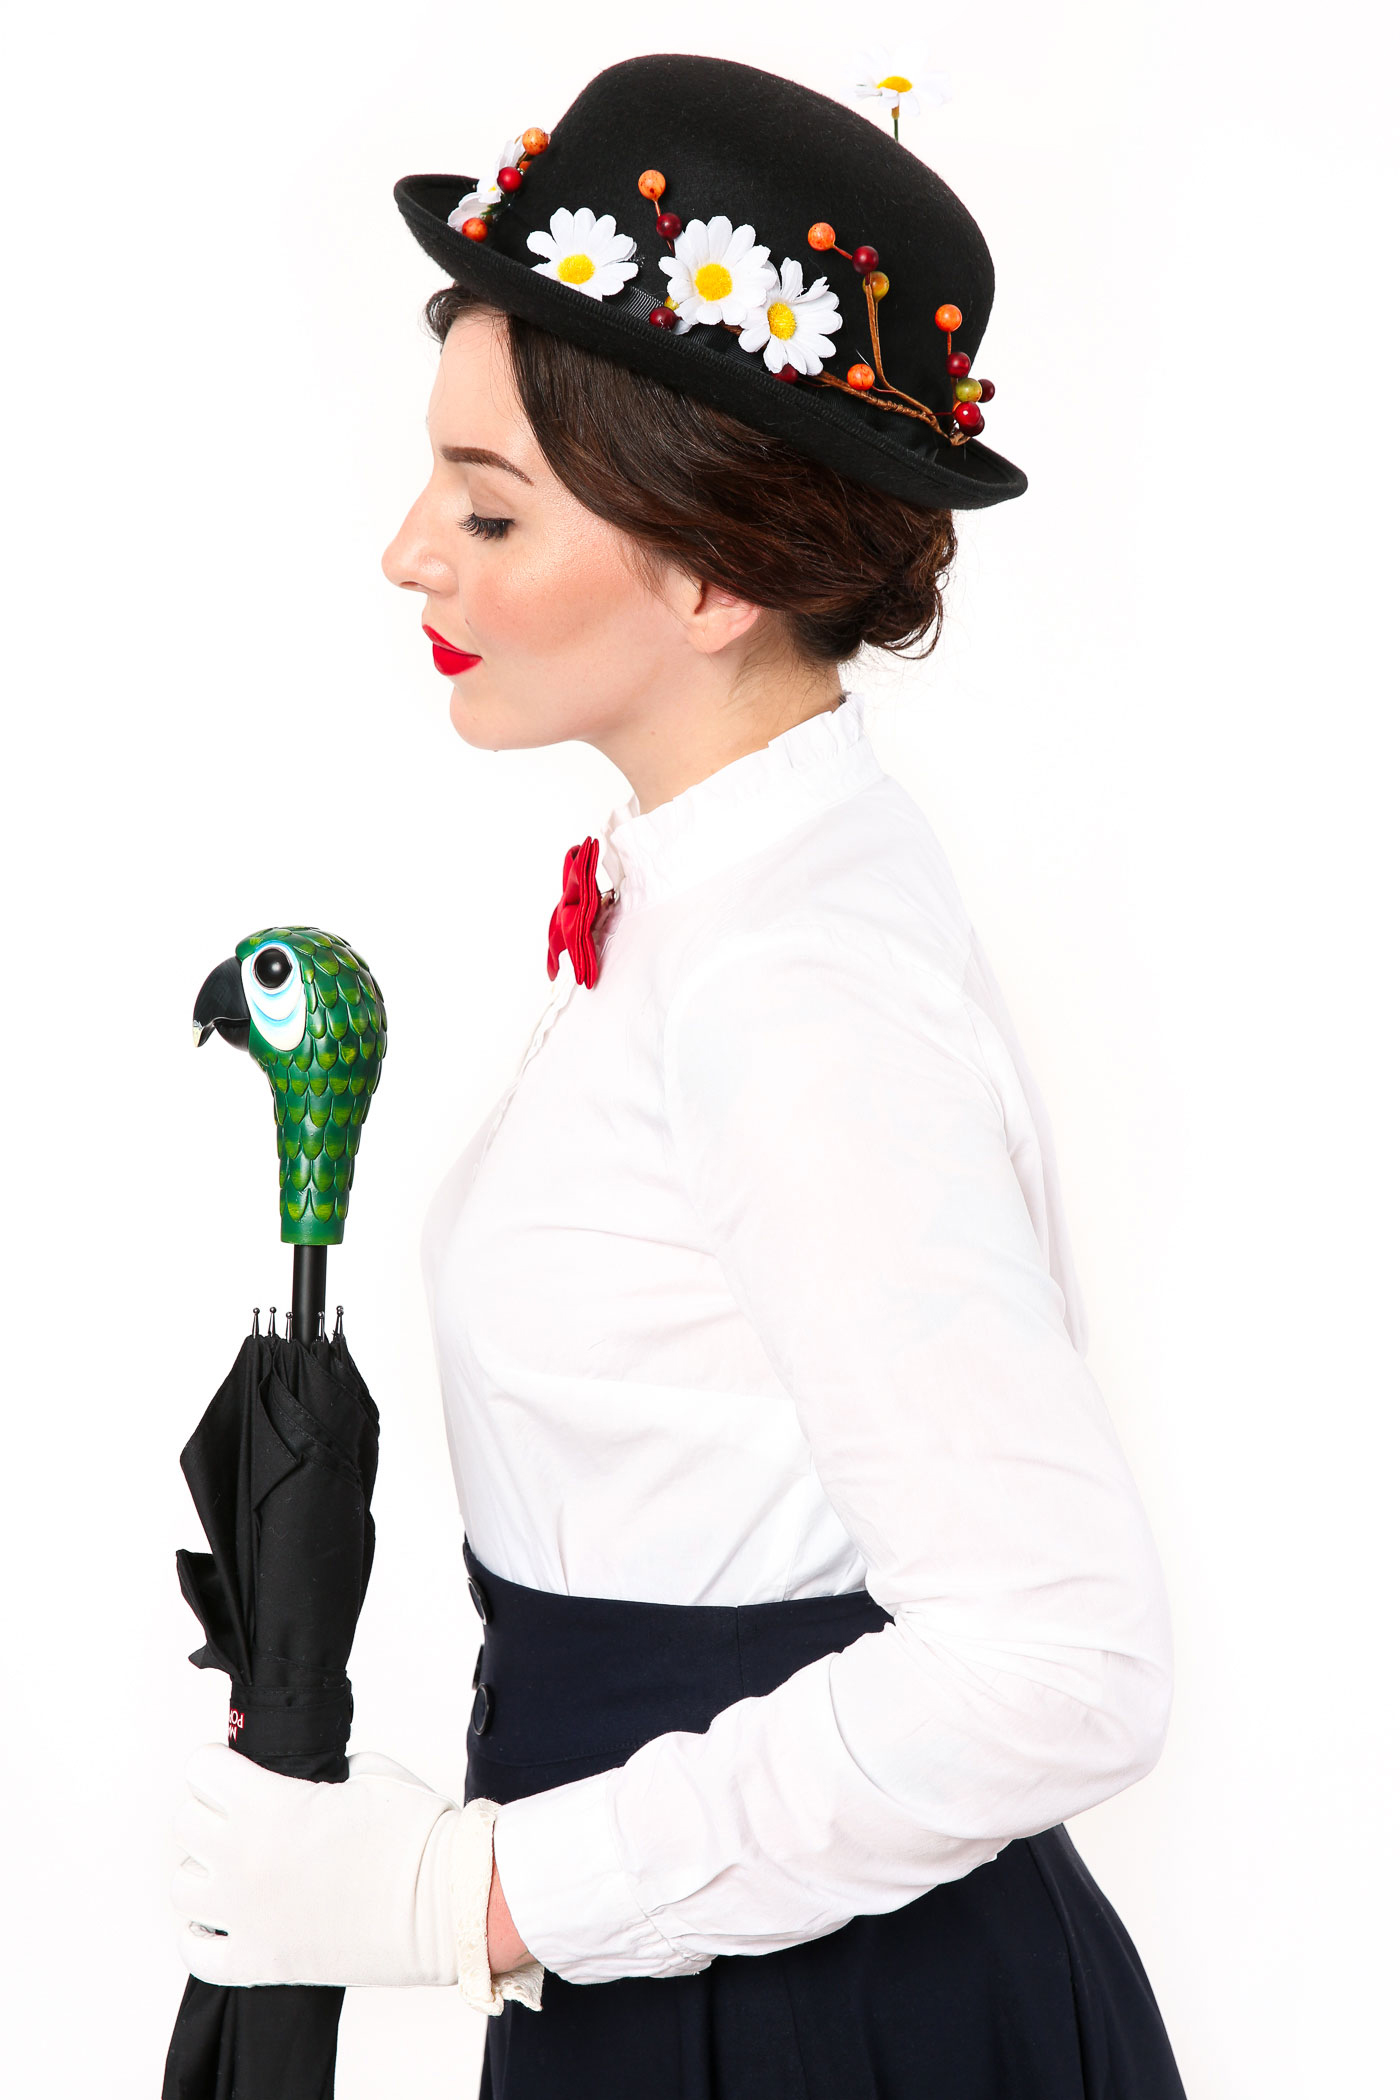 mary poppins costume keiko lynn ...  sc 1 st  Keiko Lynn & Mary Poppins Costume Bert Costume: Halloween Couples Costume Idea